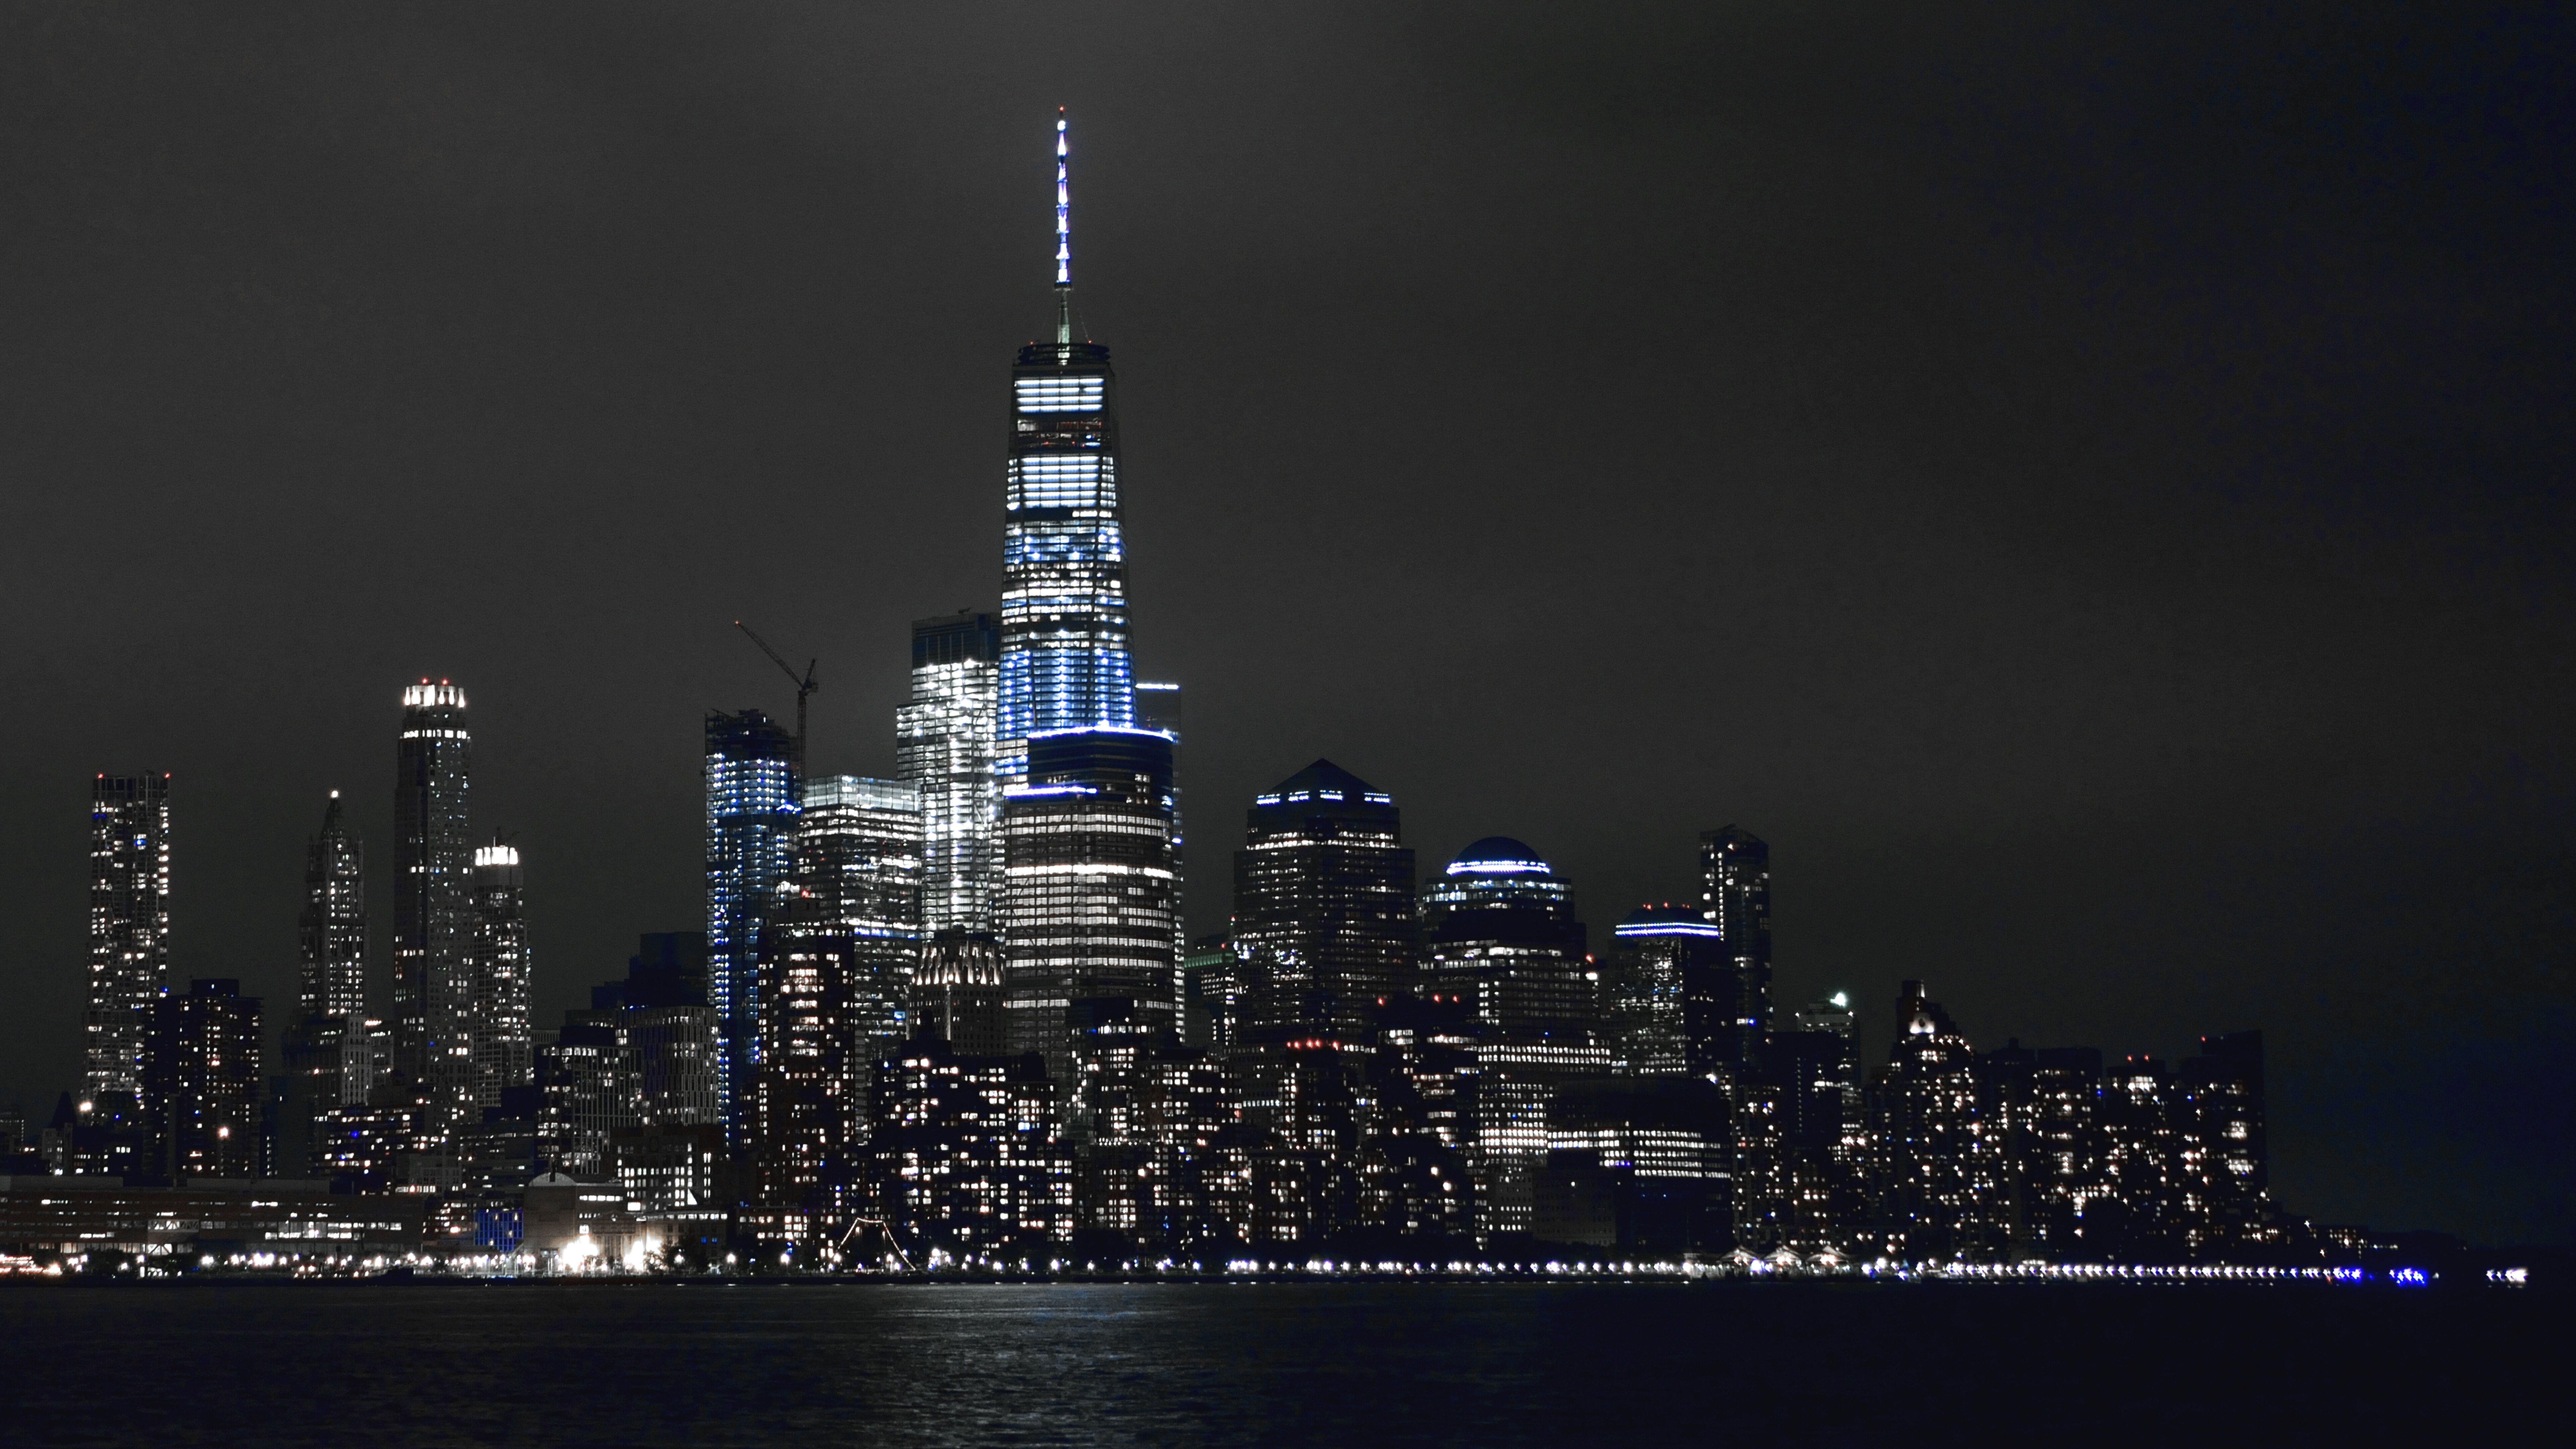 7680x4320 New York Buildings Lights 5k 8k HD 4k Wallpapers